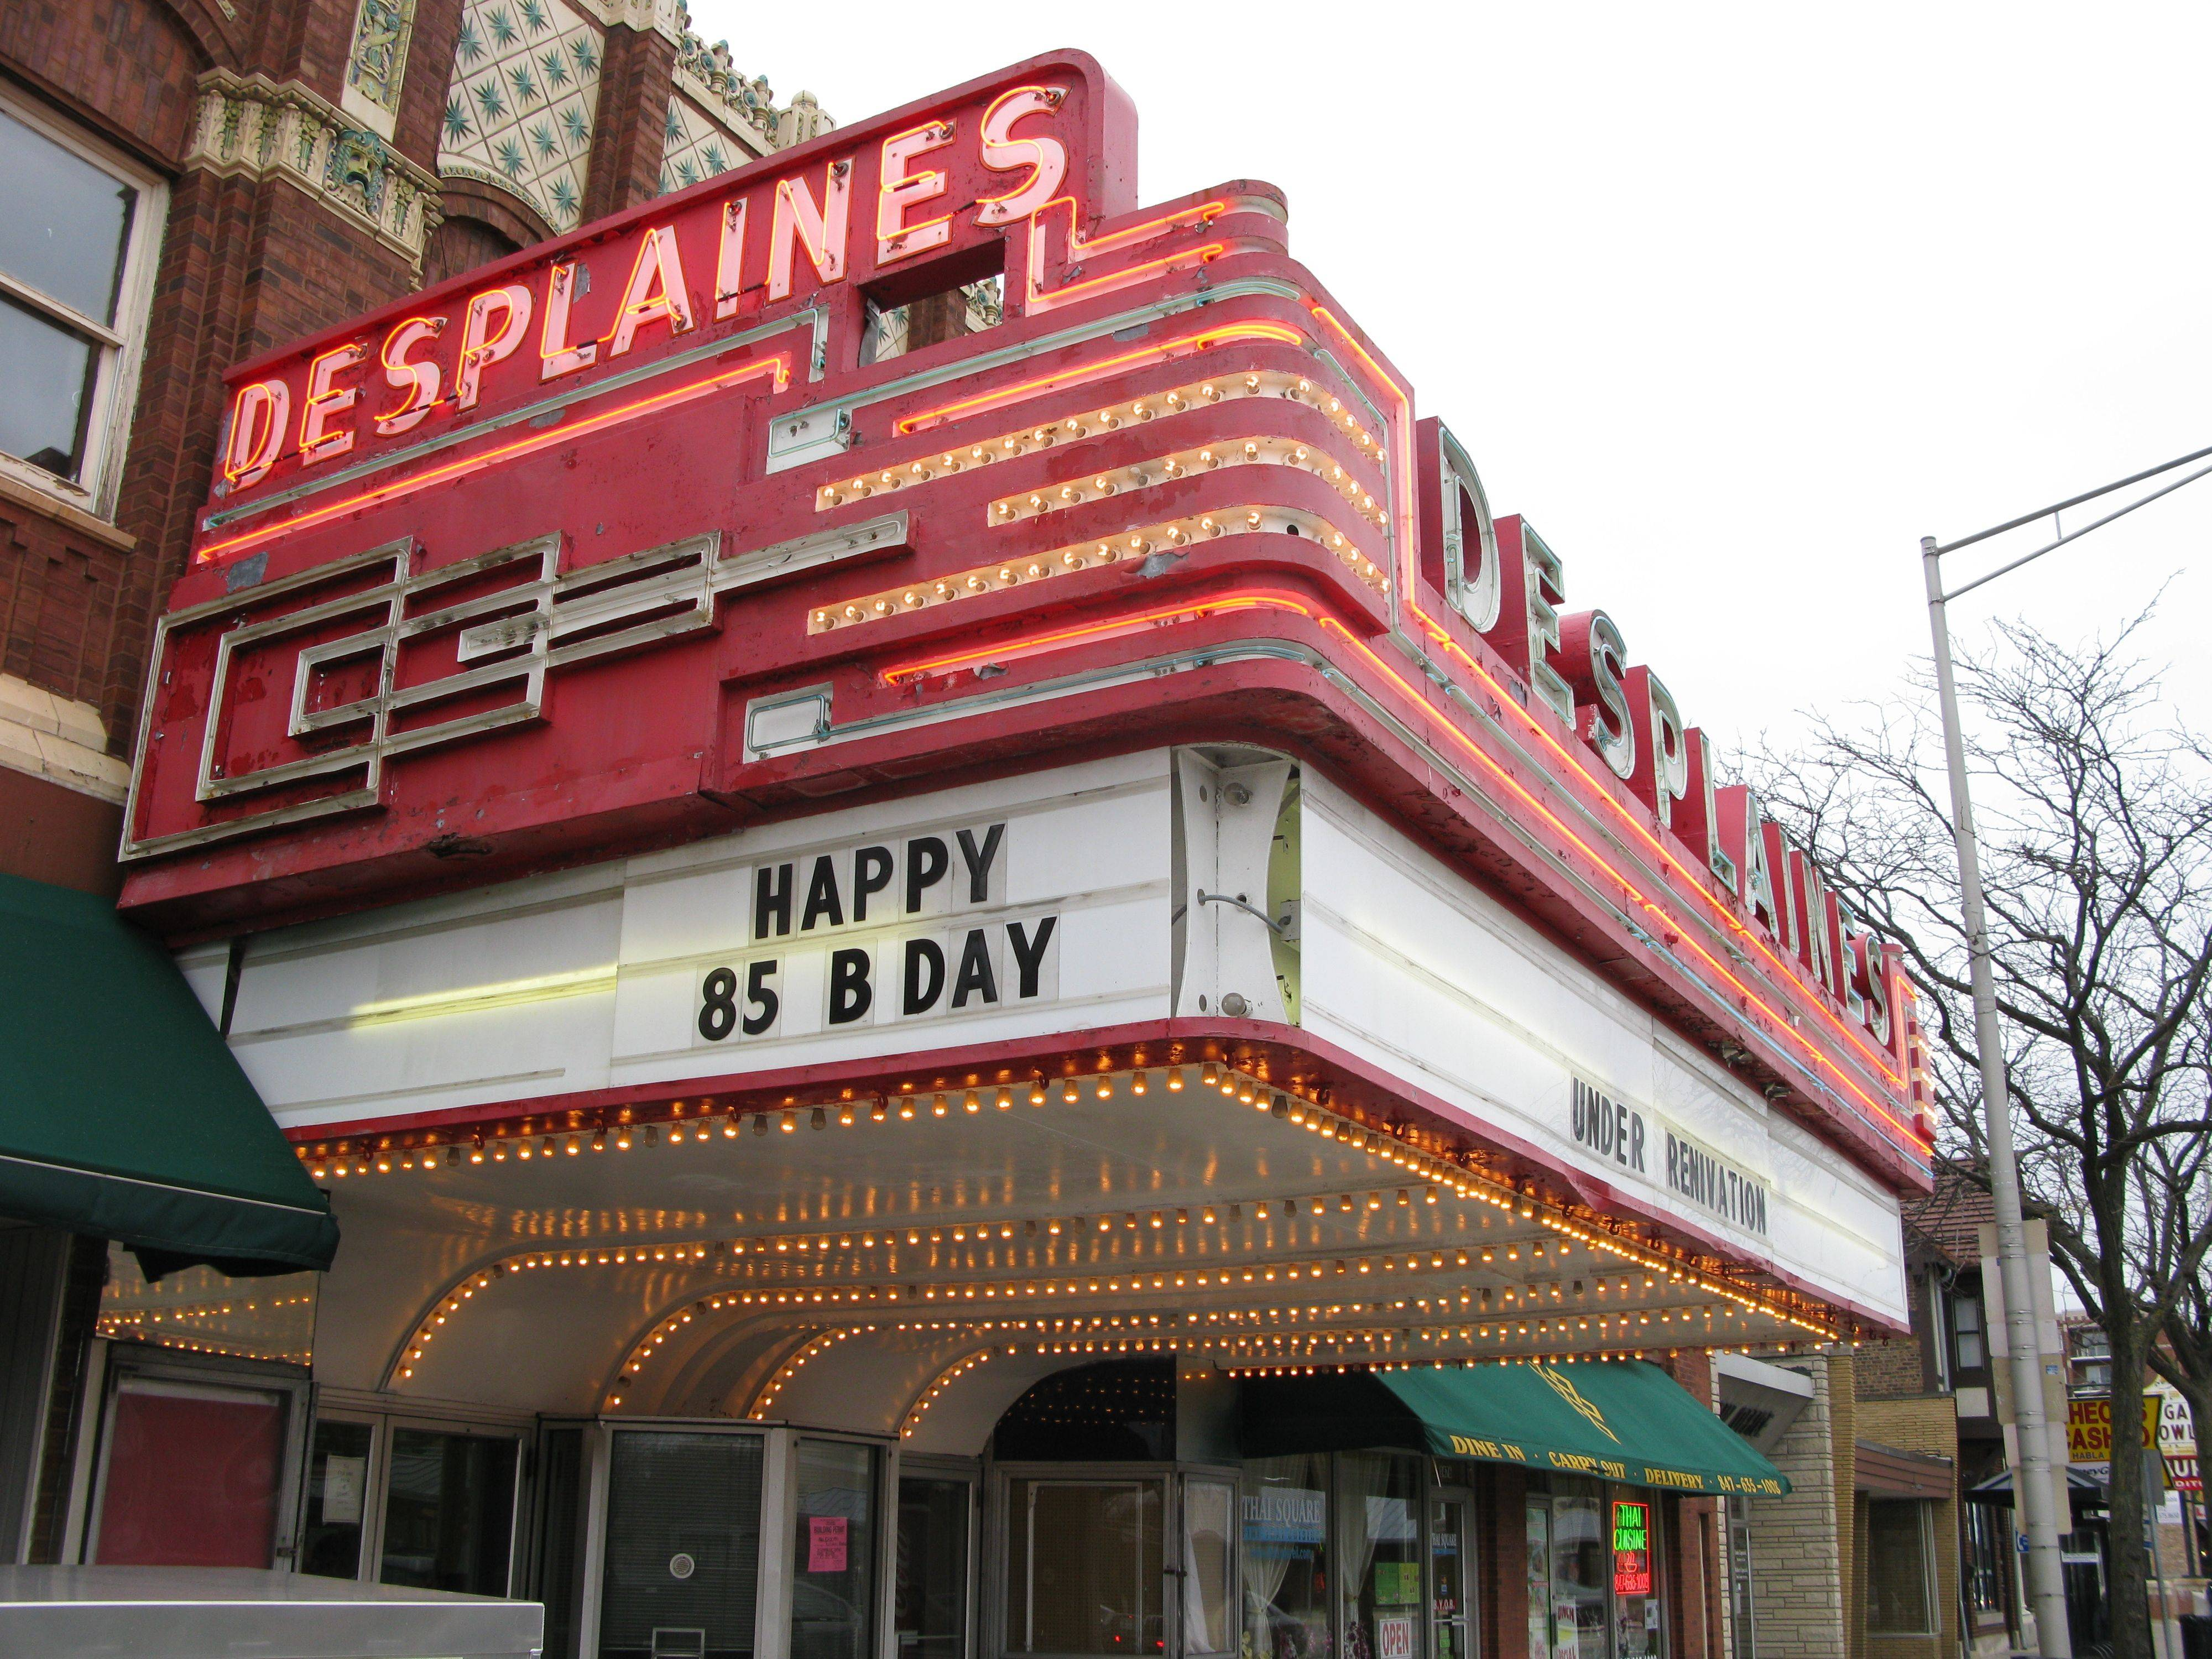 The historic downtown Des Plaines Theatre celebrated its 85th anniversary in 2010. The theater is being restored and is set to reopen Nov. 11.